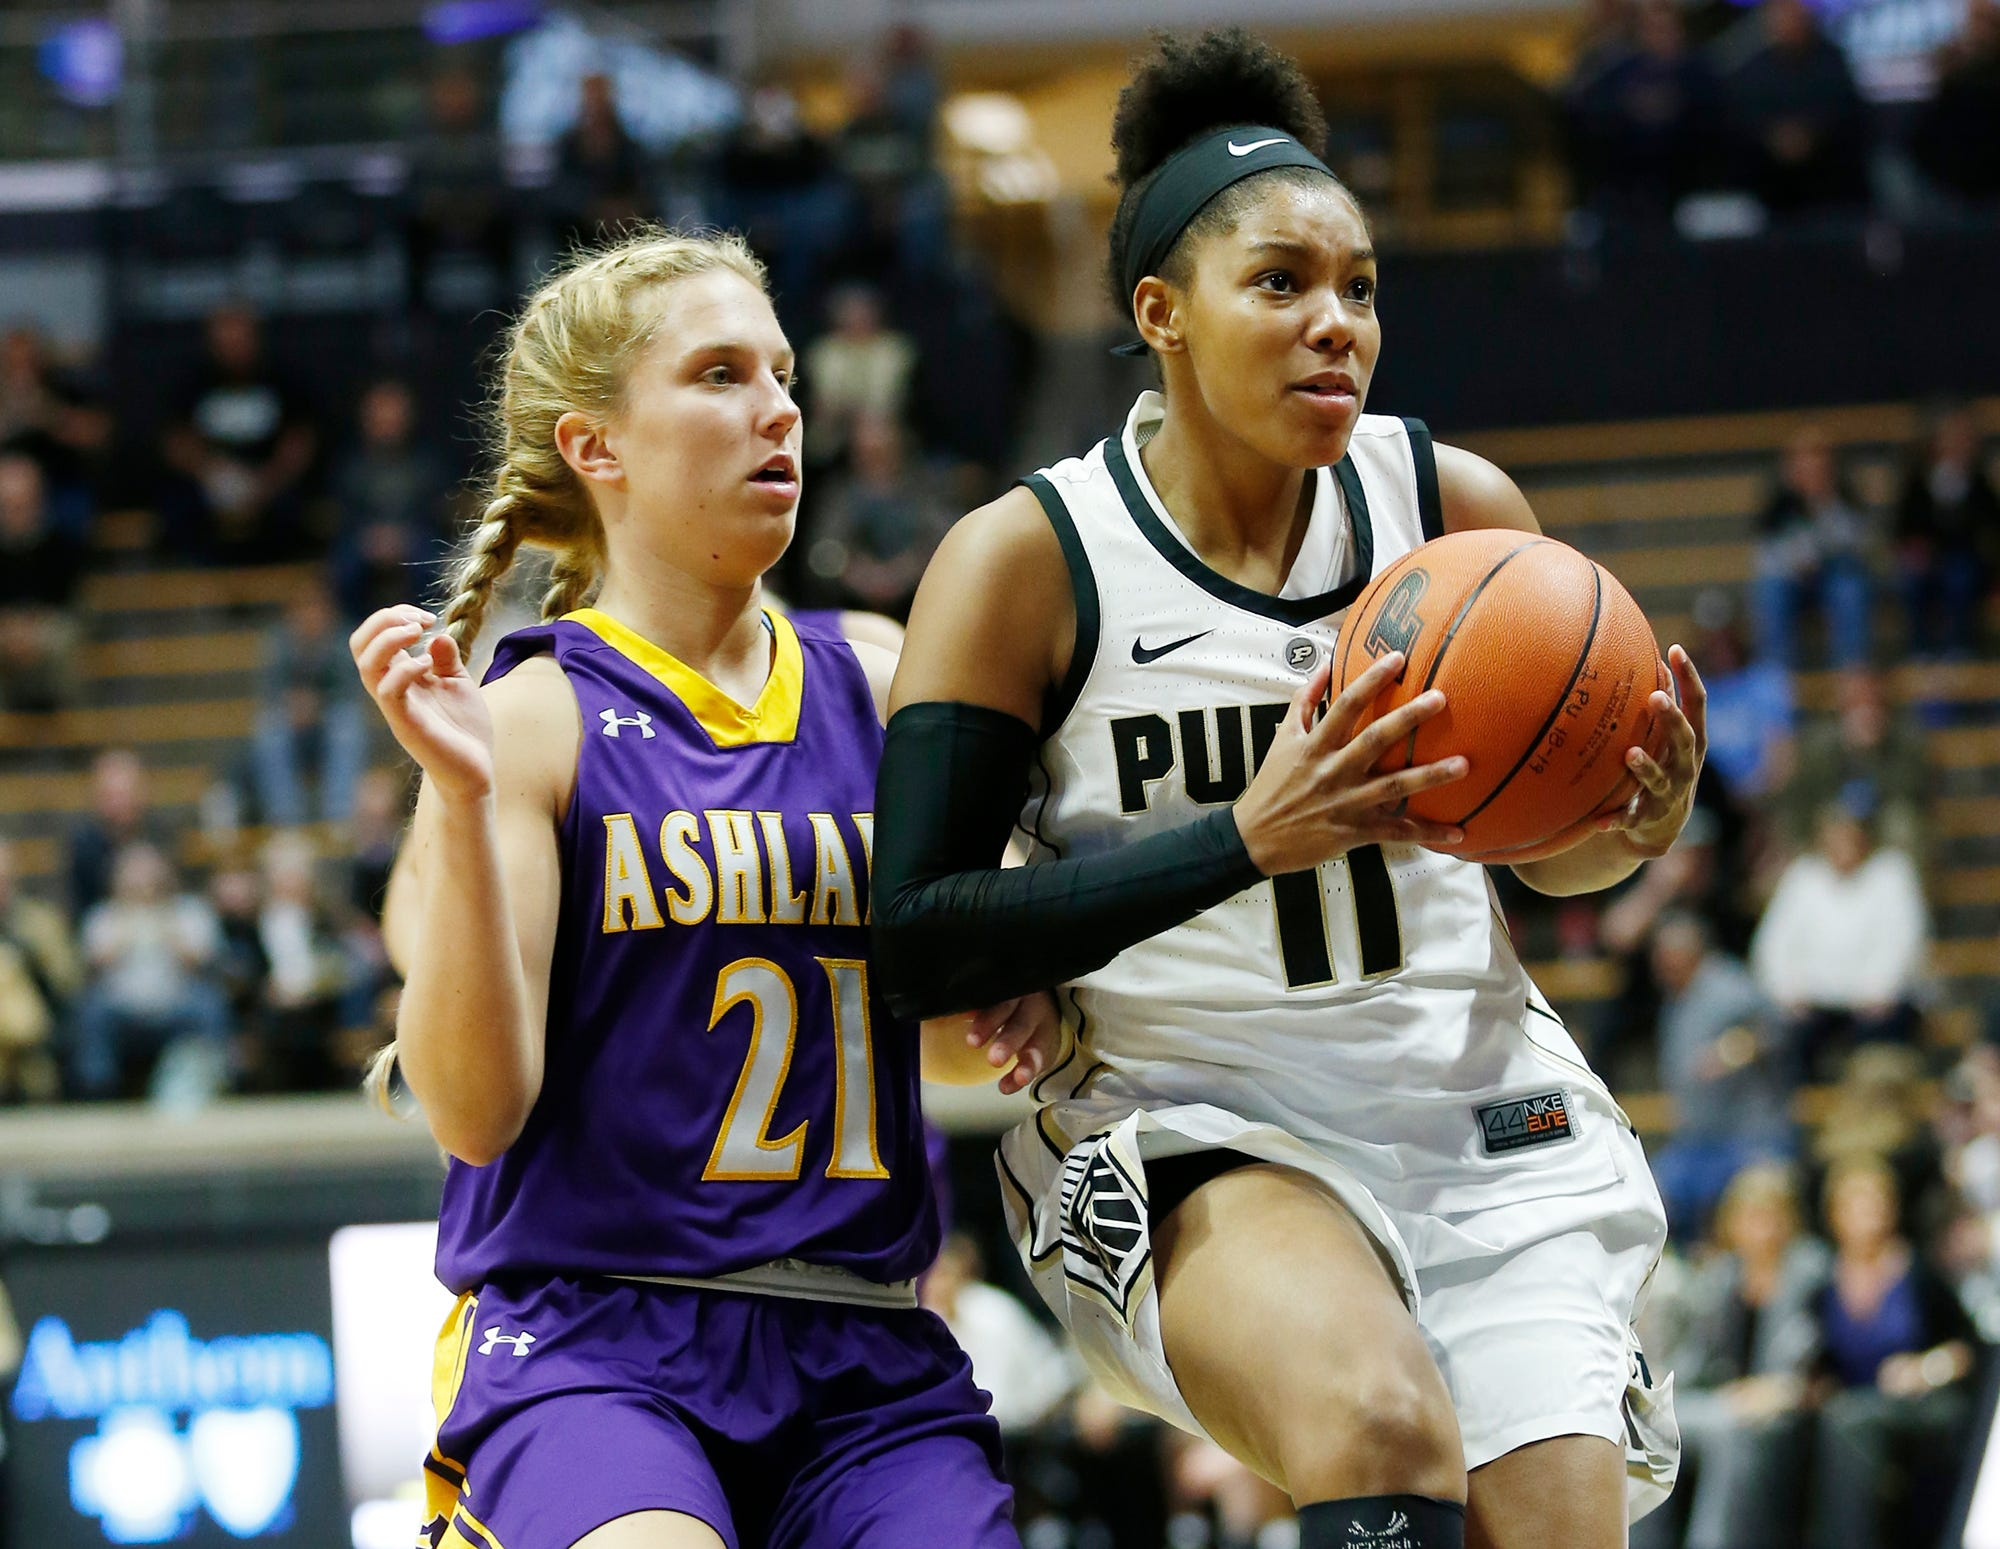 Purdue's Dominique Oden gets a step on Ashland's Jodi Johnson on Sunday in Mackey Arena.